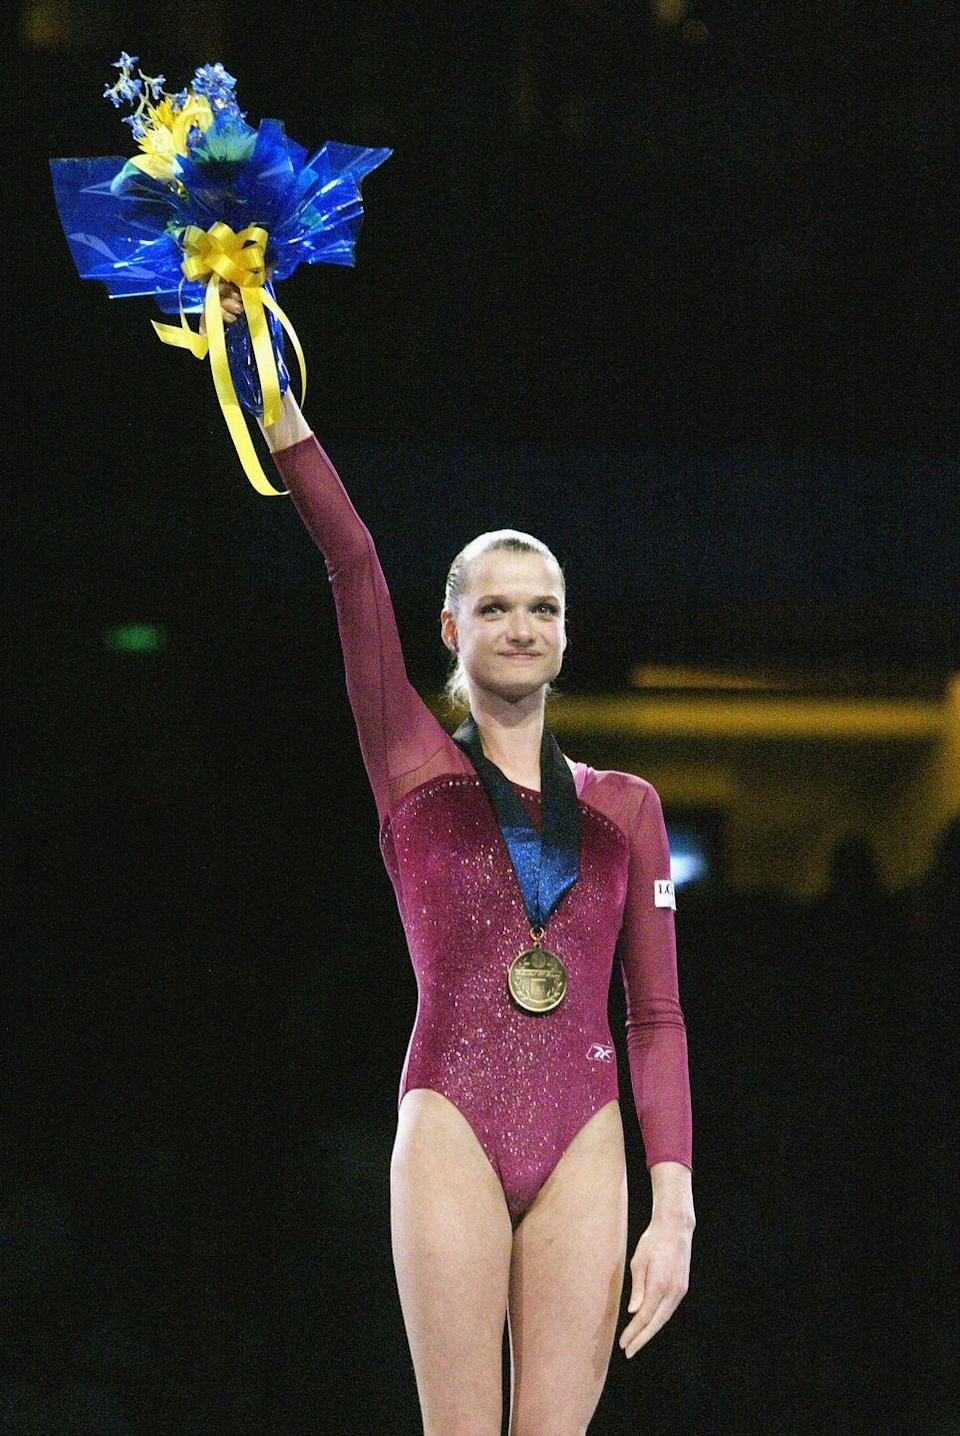 """<p>Russian gymnast Svetlana Khorkina was one of the most talented athletes in the late '90s and early 2000s. Due to her <a href=""""https://olympics.com/en/athletes/svetlana-khorkina"""" rel=""""nofollow noopener"""" target=""""_blank"""" data-ylk=""""slk:unusual height"""" class=""""link rapid-noclick-resp"""">unusual height</a> for the sport, Khorkina had to develop several of her own unique moves—but that didn't stop her from taking home seven Olympic medals over three Olympic Games. </p>"""